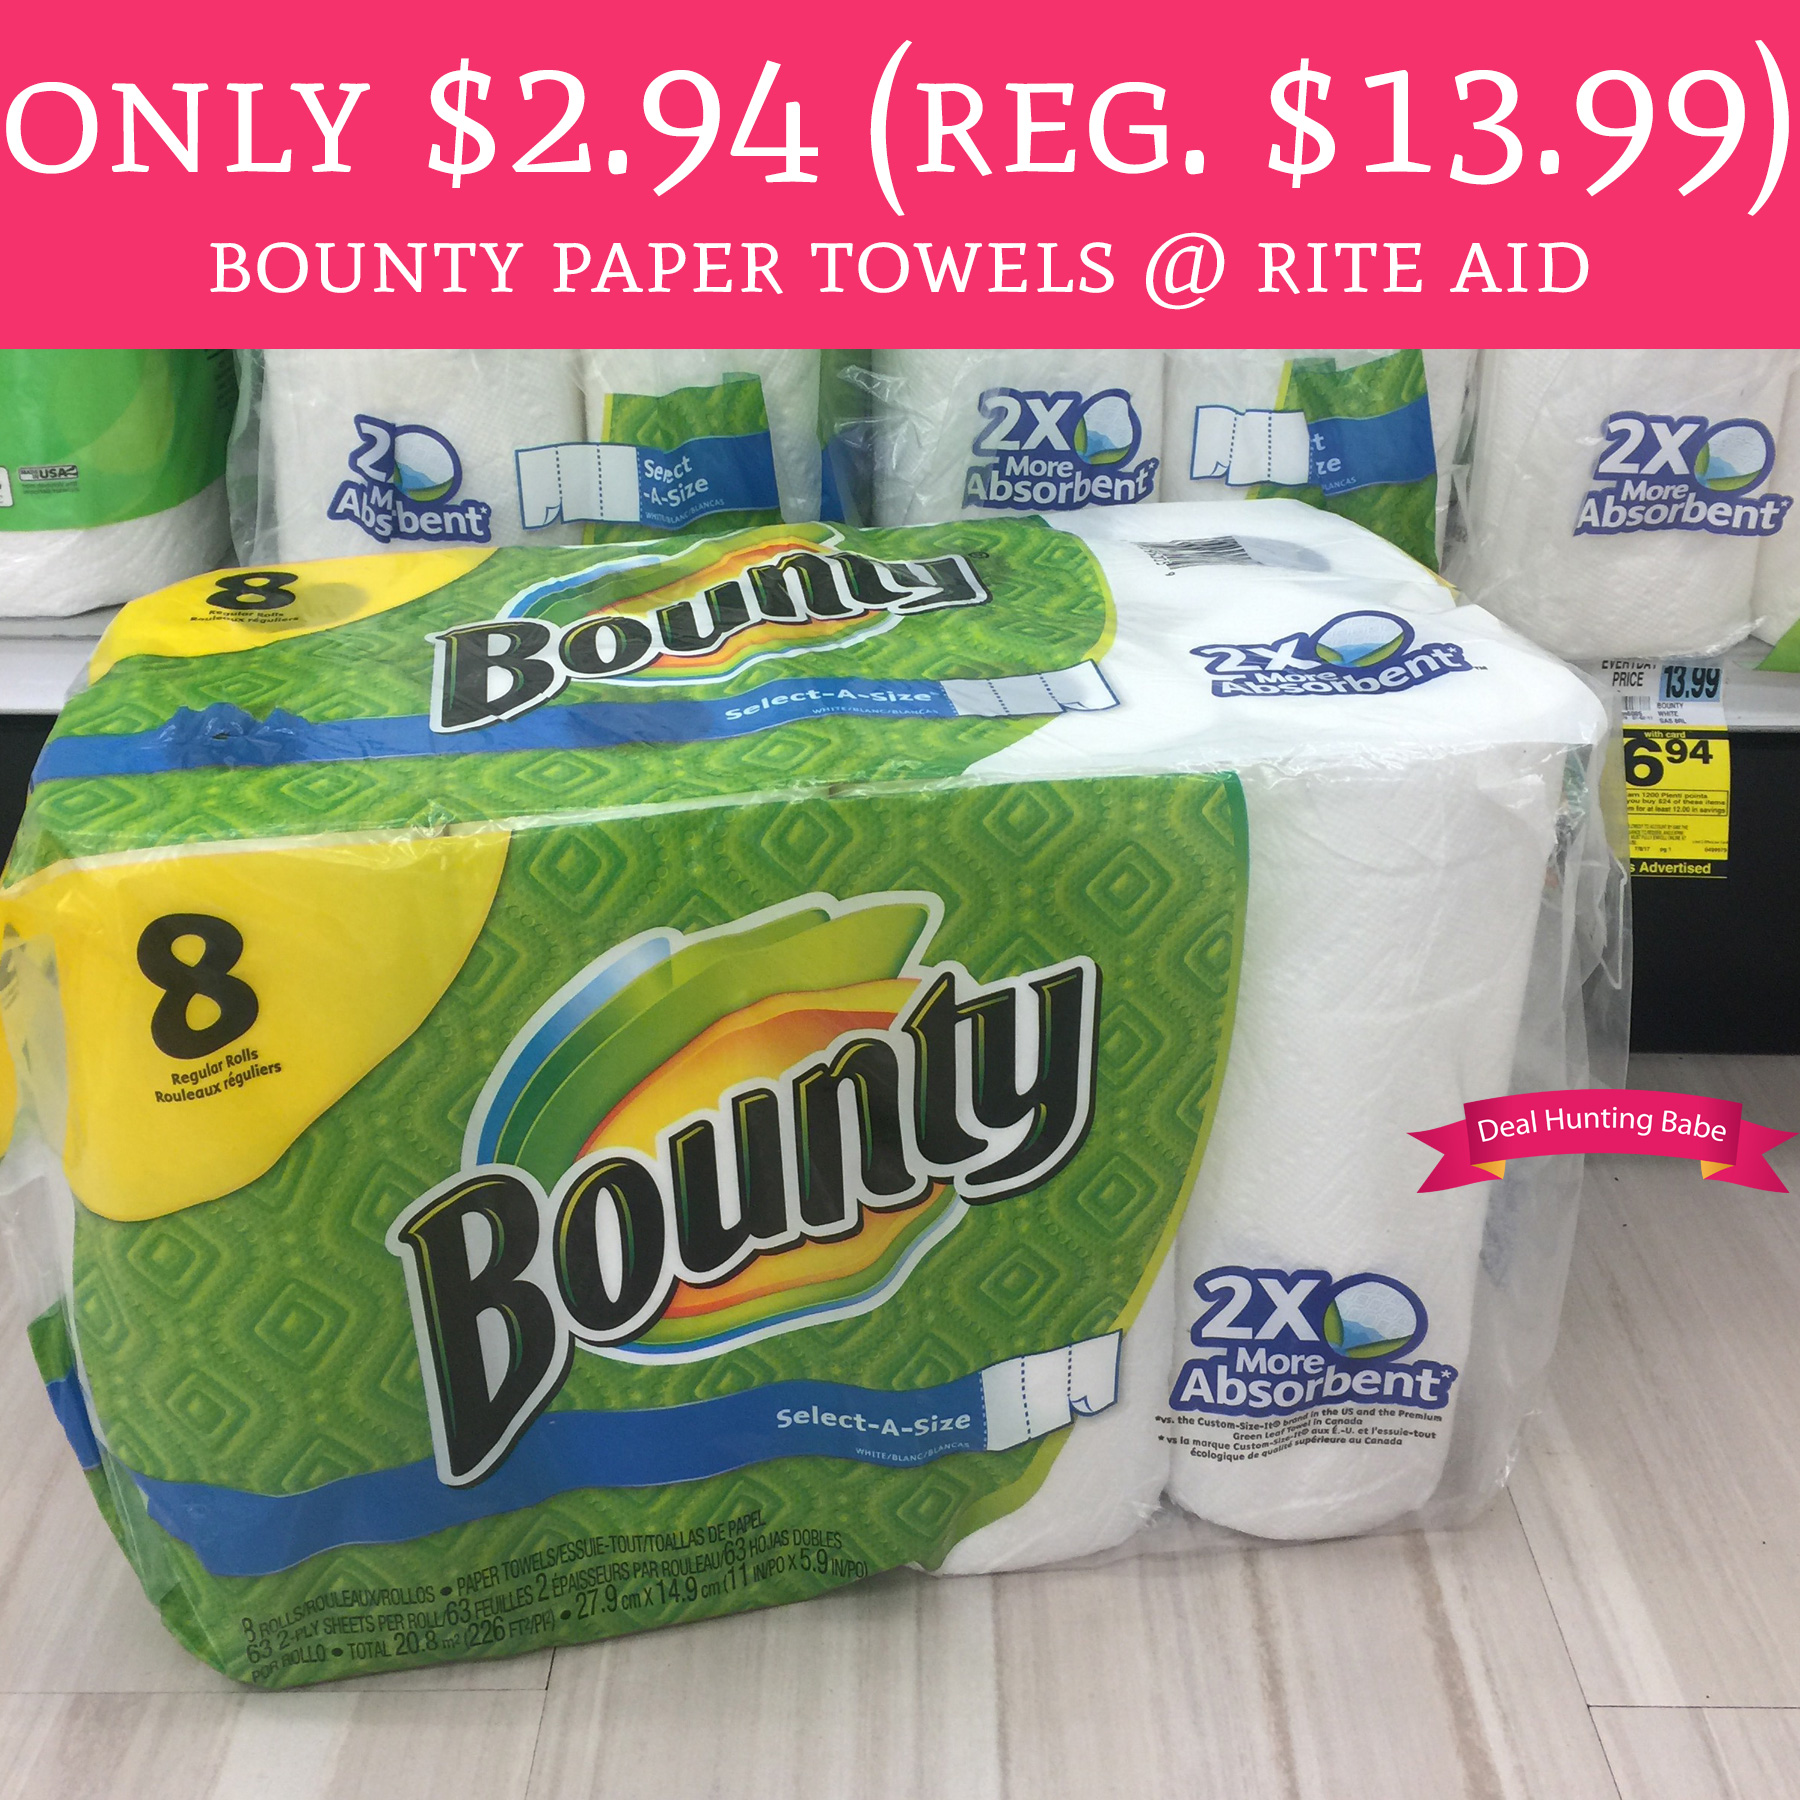 Rite Aid Stock Quote: PRINT! Only $2.94 (Regular $13.99) Bounty Paper Towels